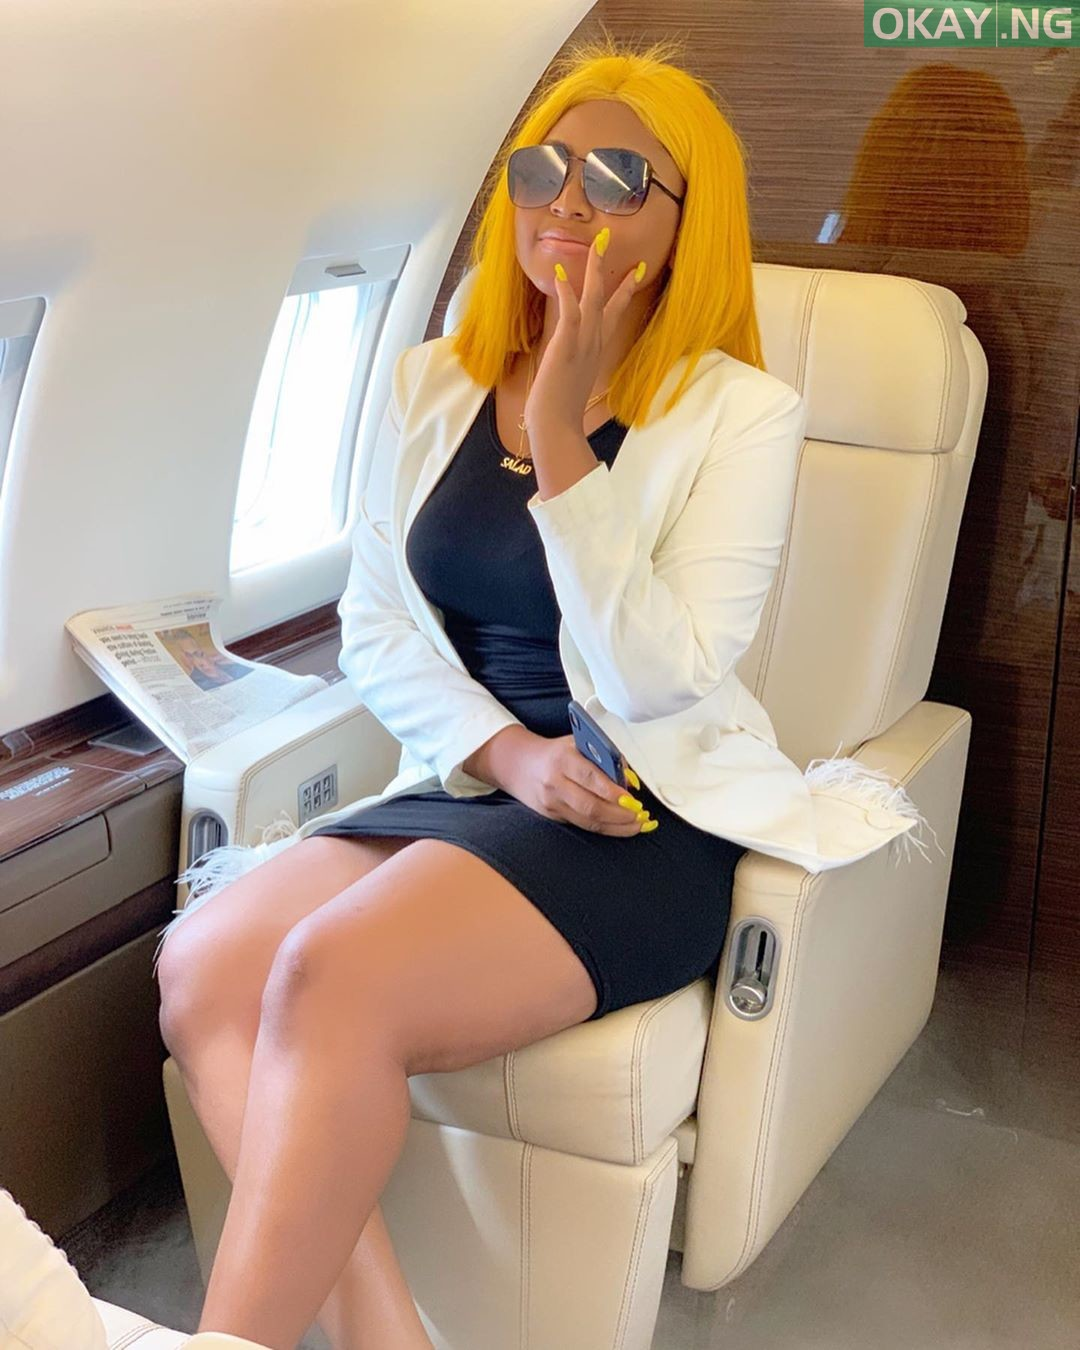 3 - Simple Girl! Regina Daniels shares new stunning pictures